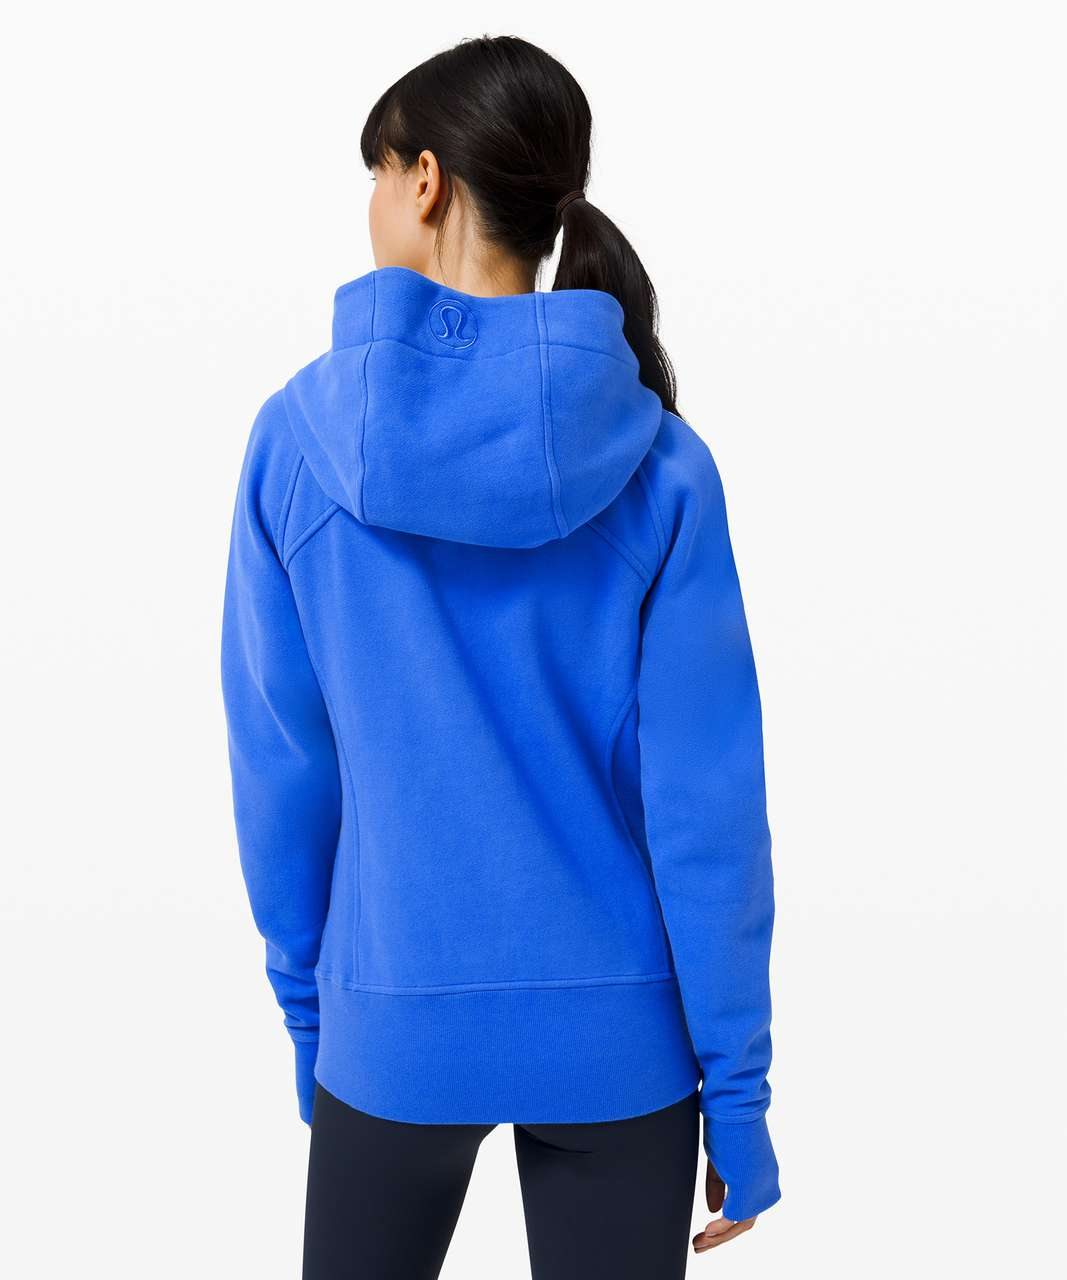 Lululemon Scuba Hoodie *Light Cotton Fleece - Wild Bluebell